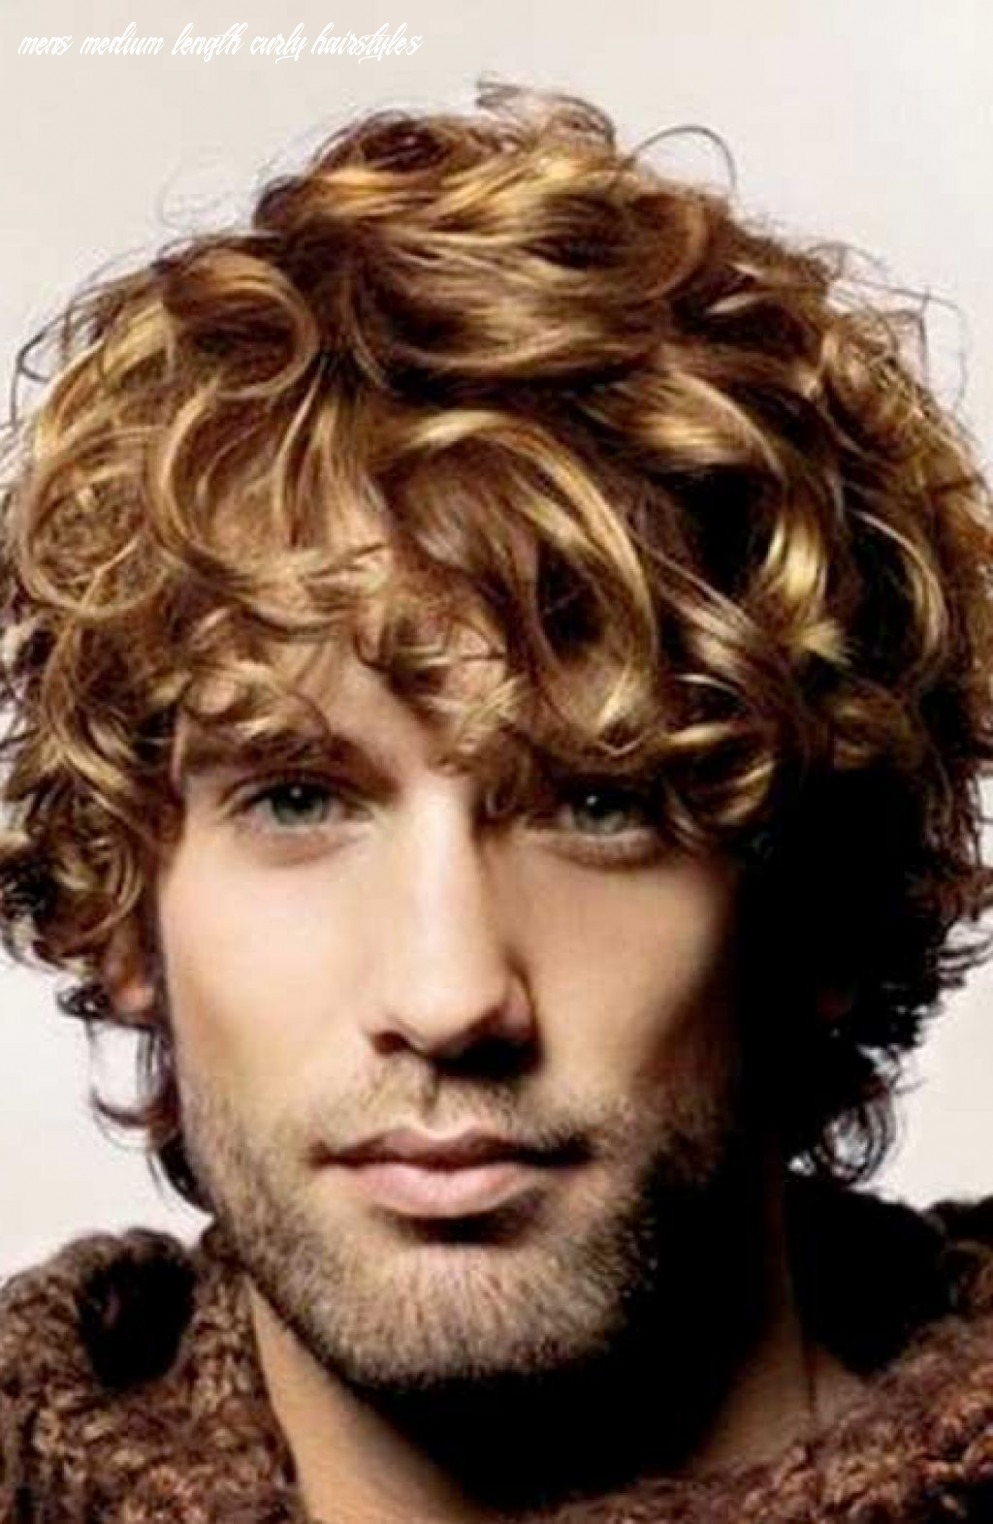 Medium curly blonde hairstyle for men | long curly hair men, curly